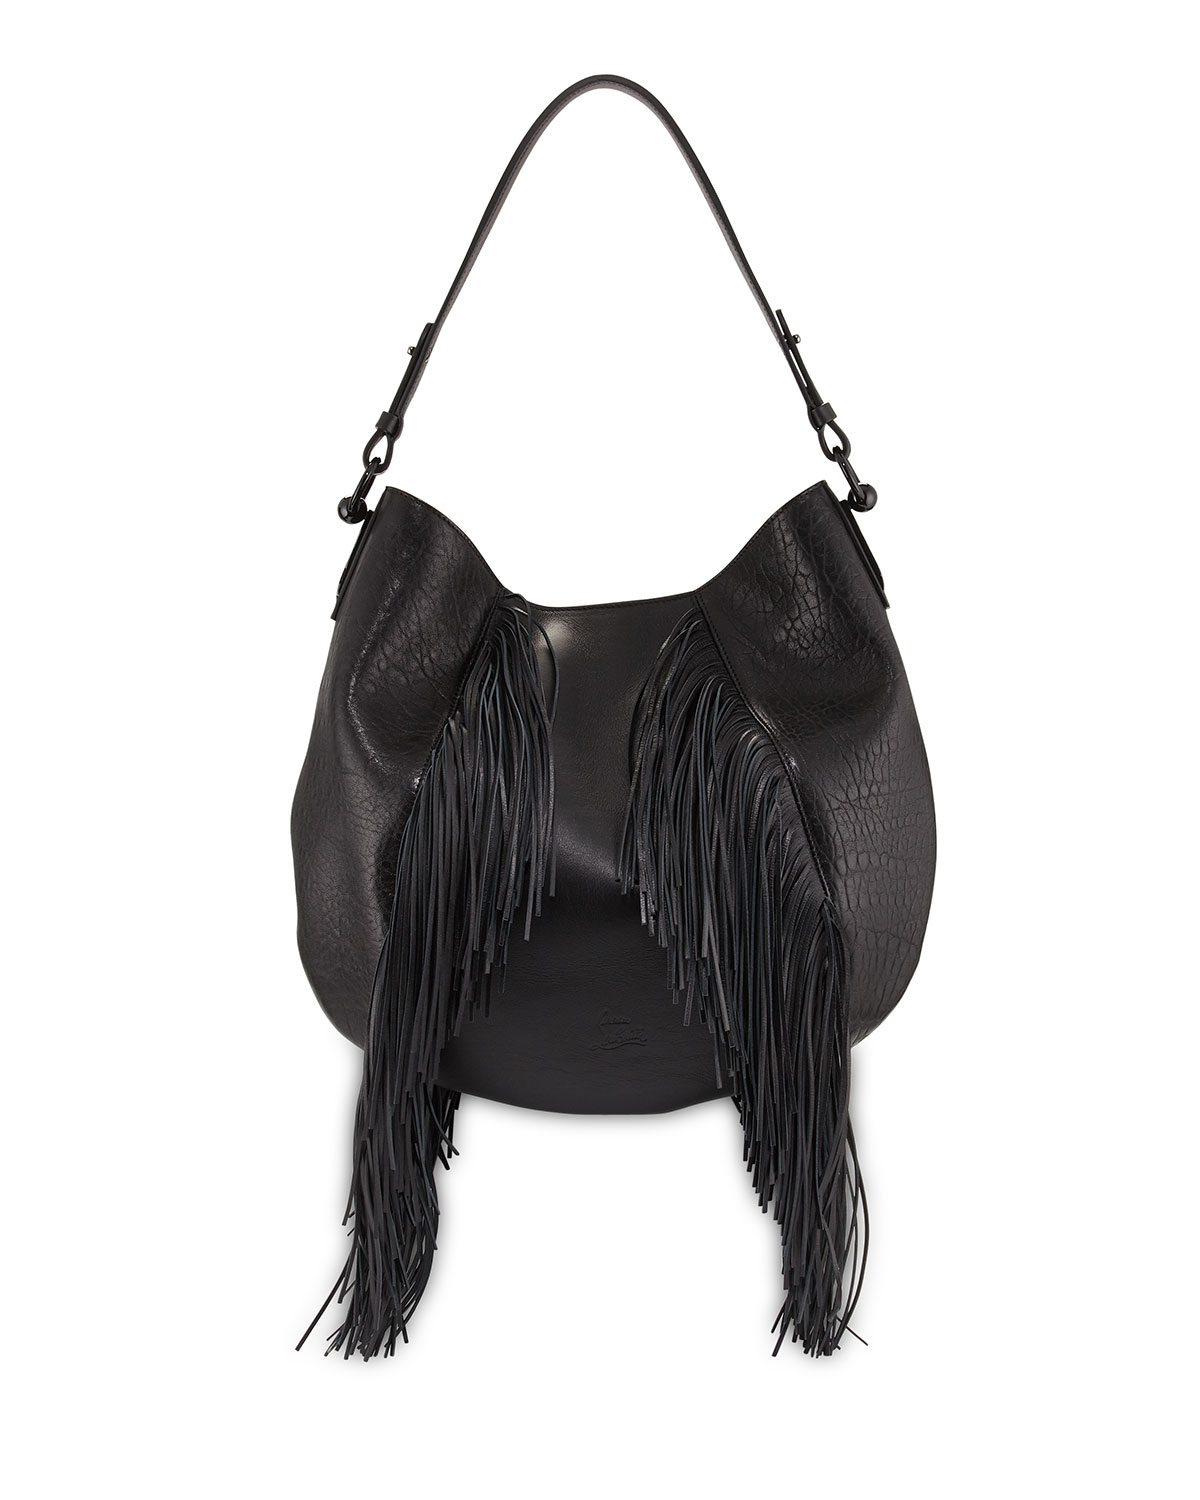 dcc09edded Christian Louboutin Lucky Fringe Leather Hobo Bag, Black | Neiman Marcus